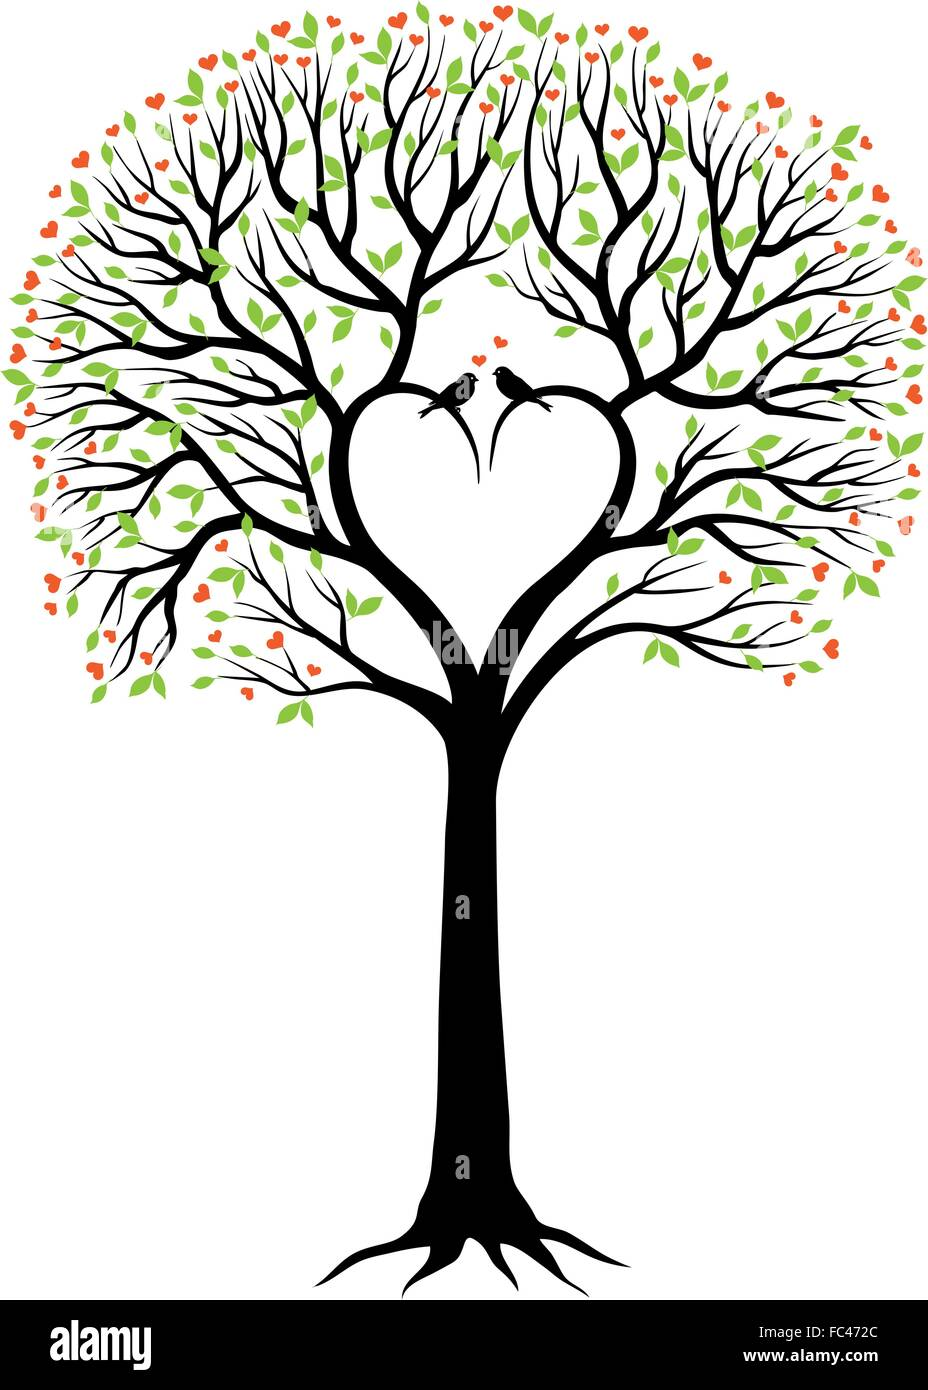 love tree with heart shaped branches for wedding valentines day